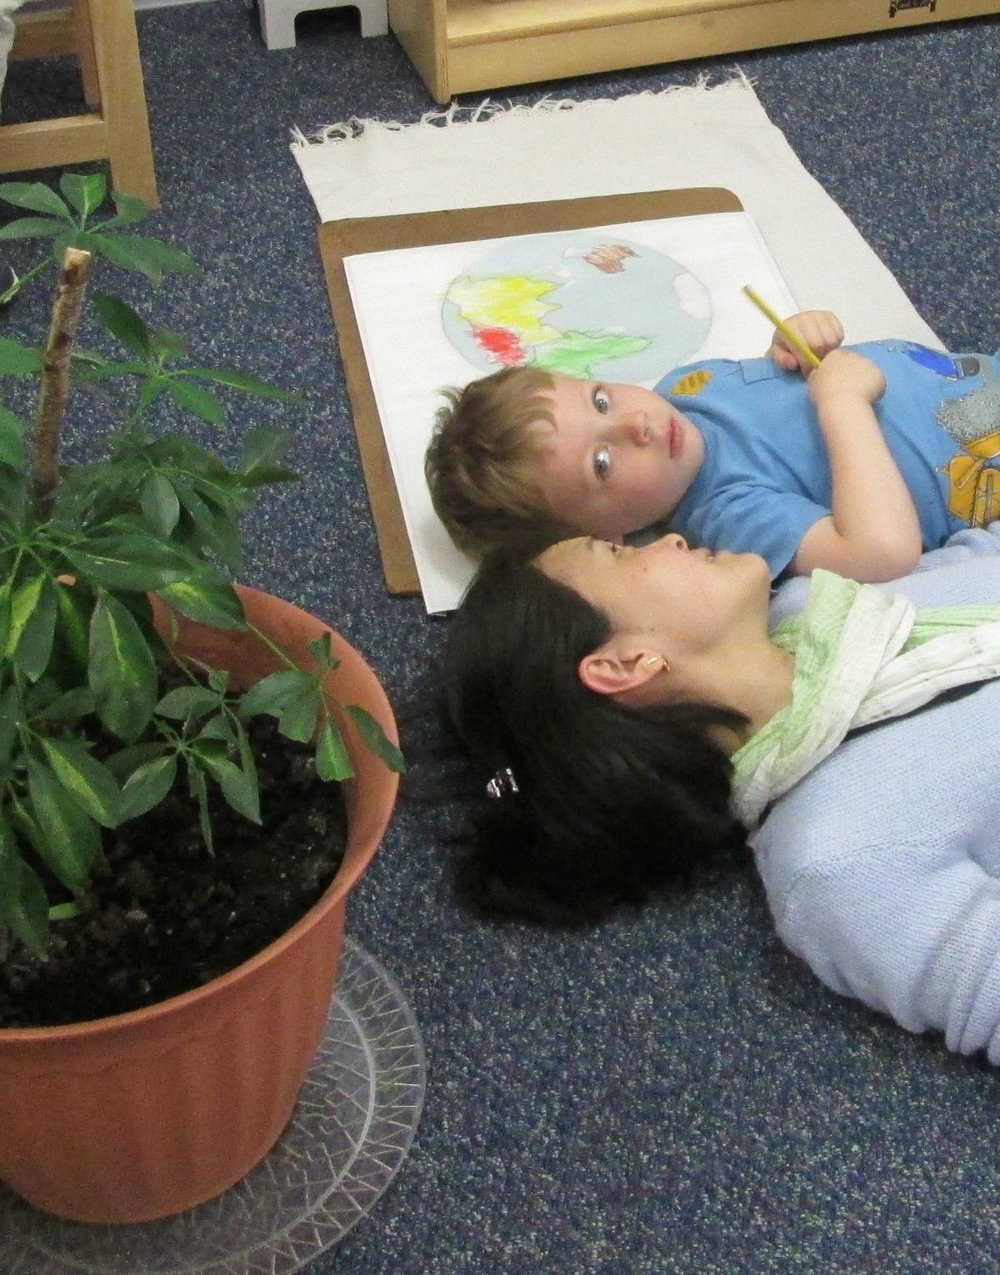 A Montessori classroom engages the whole child.  In Primary 3, a teacher takes time to connect with each child as an individual, and those small connections help to foster the child's growth and development by nurturing a lifelong love of learning.